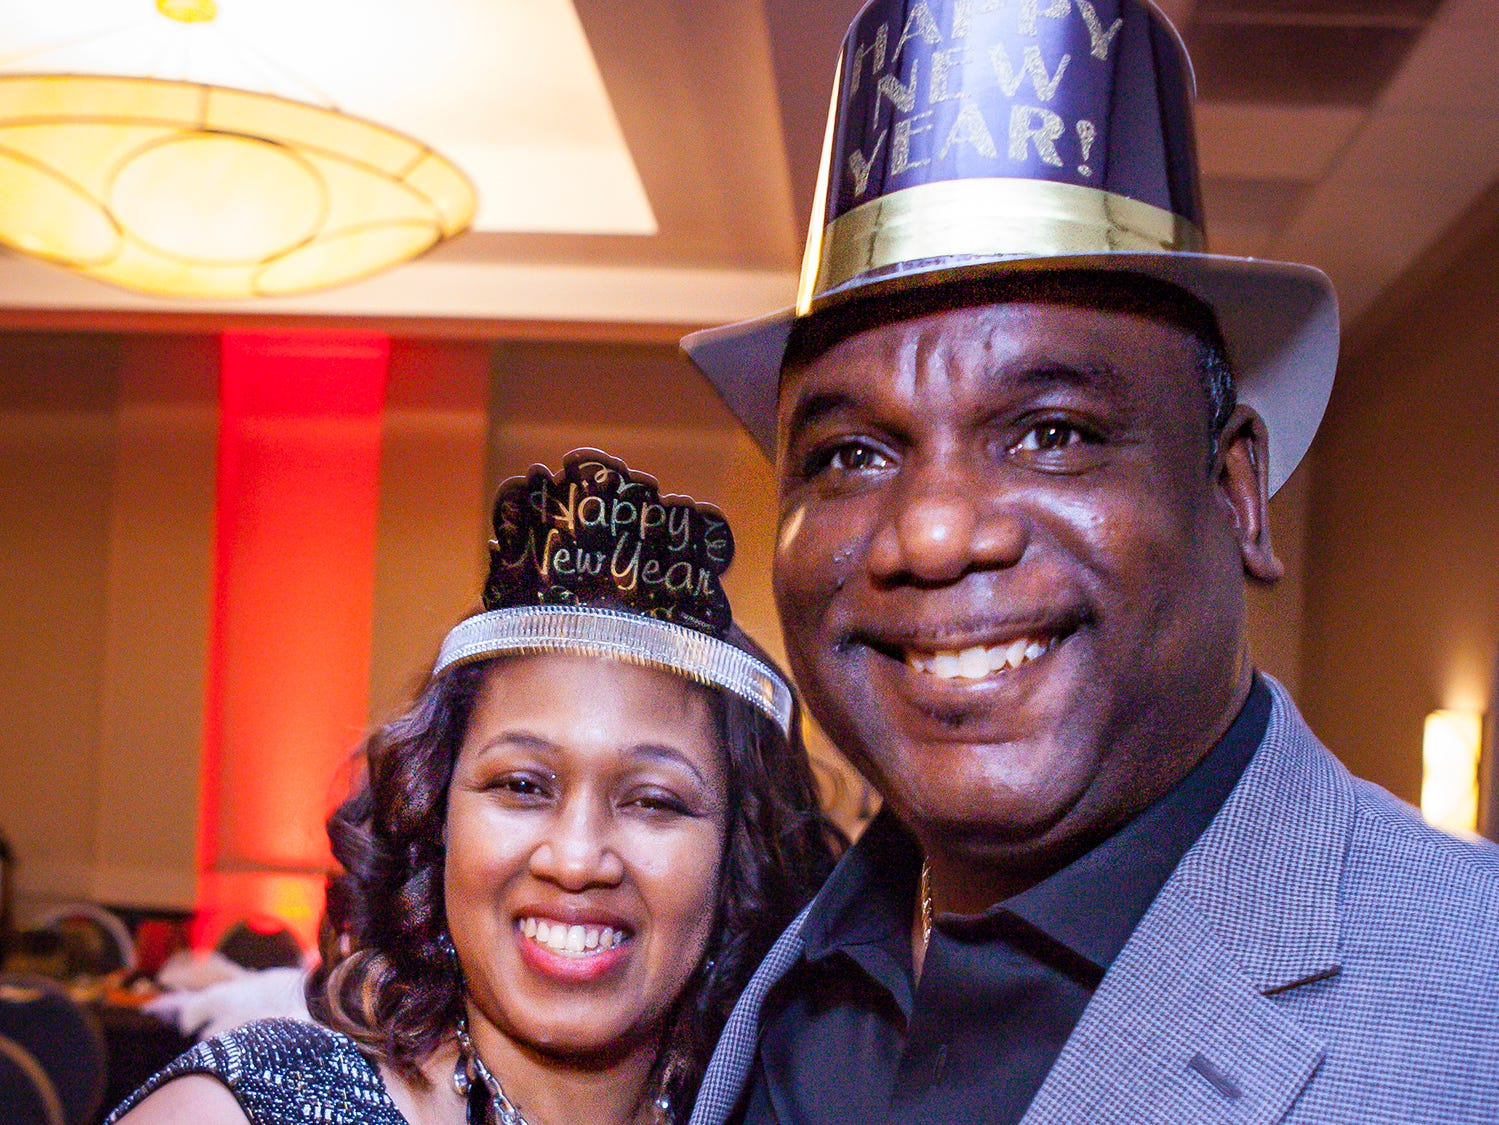 Jackie and Michael Polk at the Pyramid Foundation's Shimmer and Shine New Year's Eve party, held at DoubleTree Hotel in Murfreesboro.